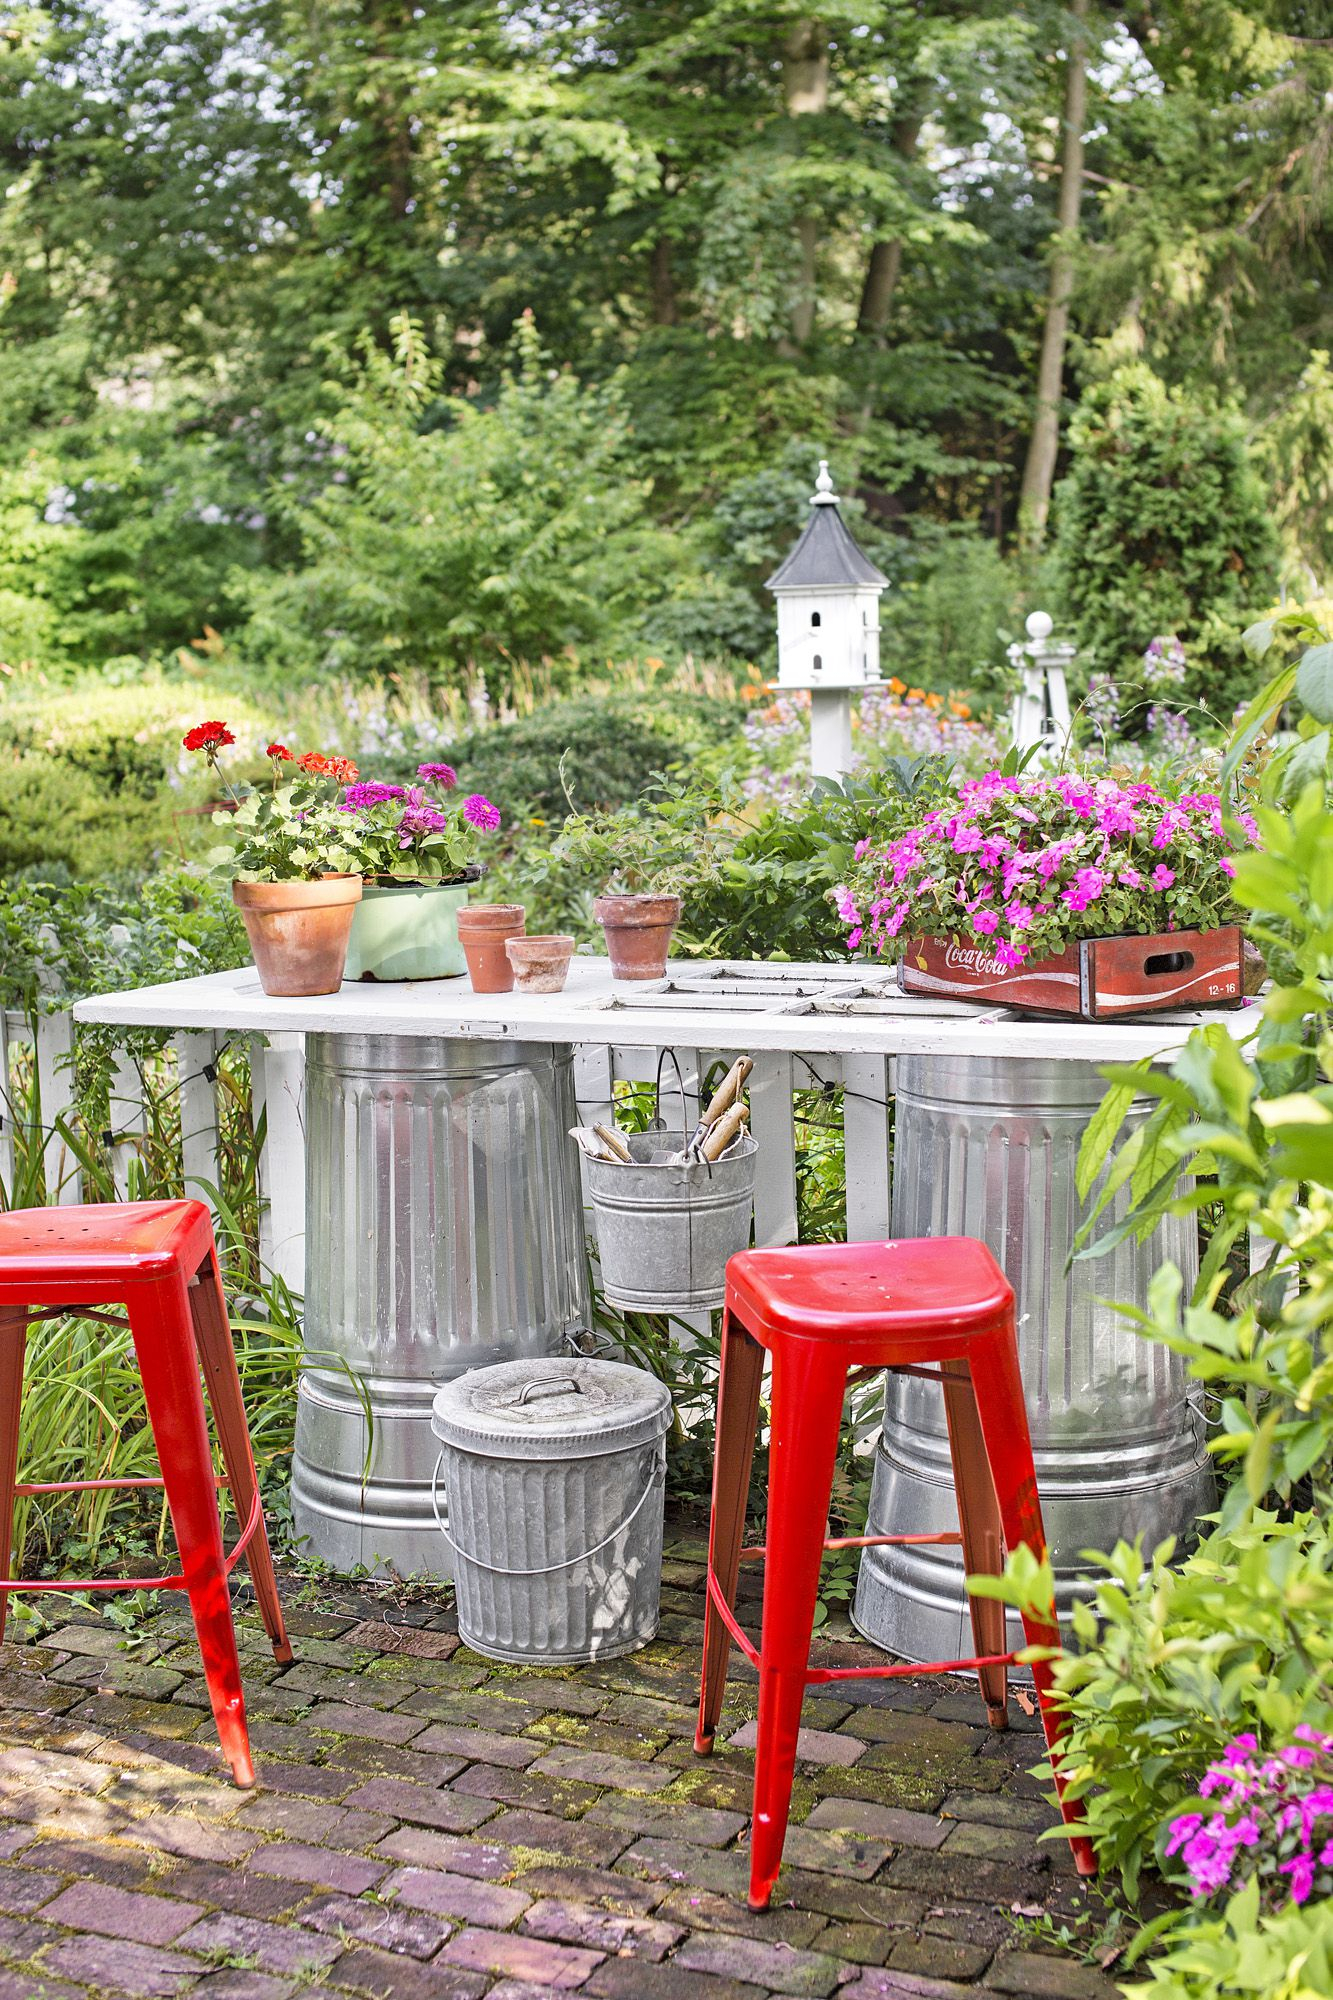 15 Smart Ways How To Improve Diy Backyard Decorating Ideas intended for 12 Awesome Concepts of How to Upgrade Backyard Decorating